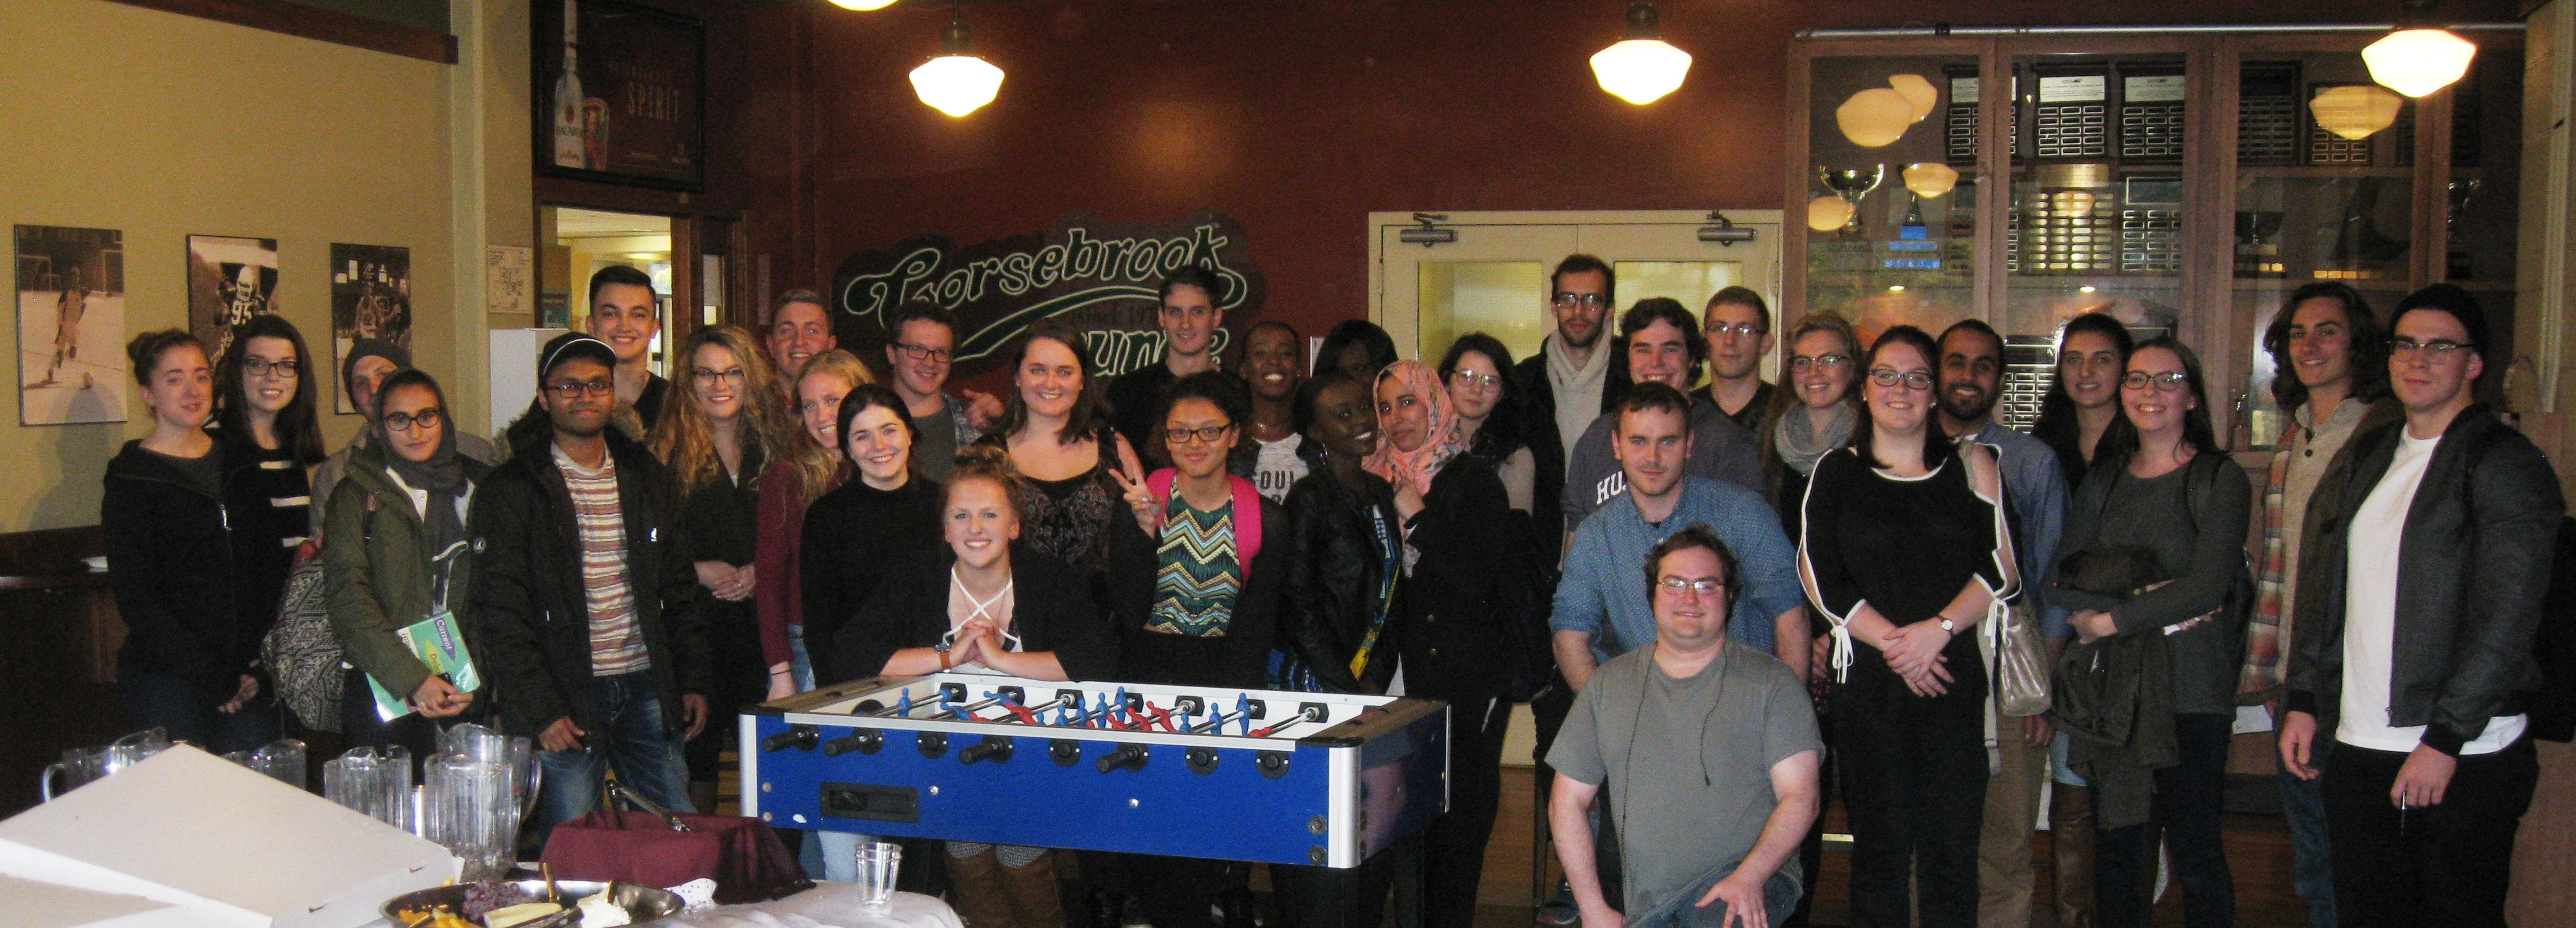 Discussion - Political Science Social - Gorsebrook Lounge - Oct 27 2016